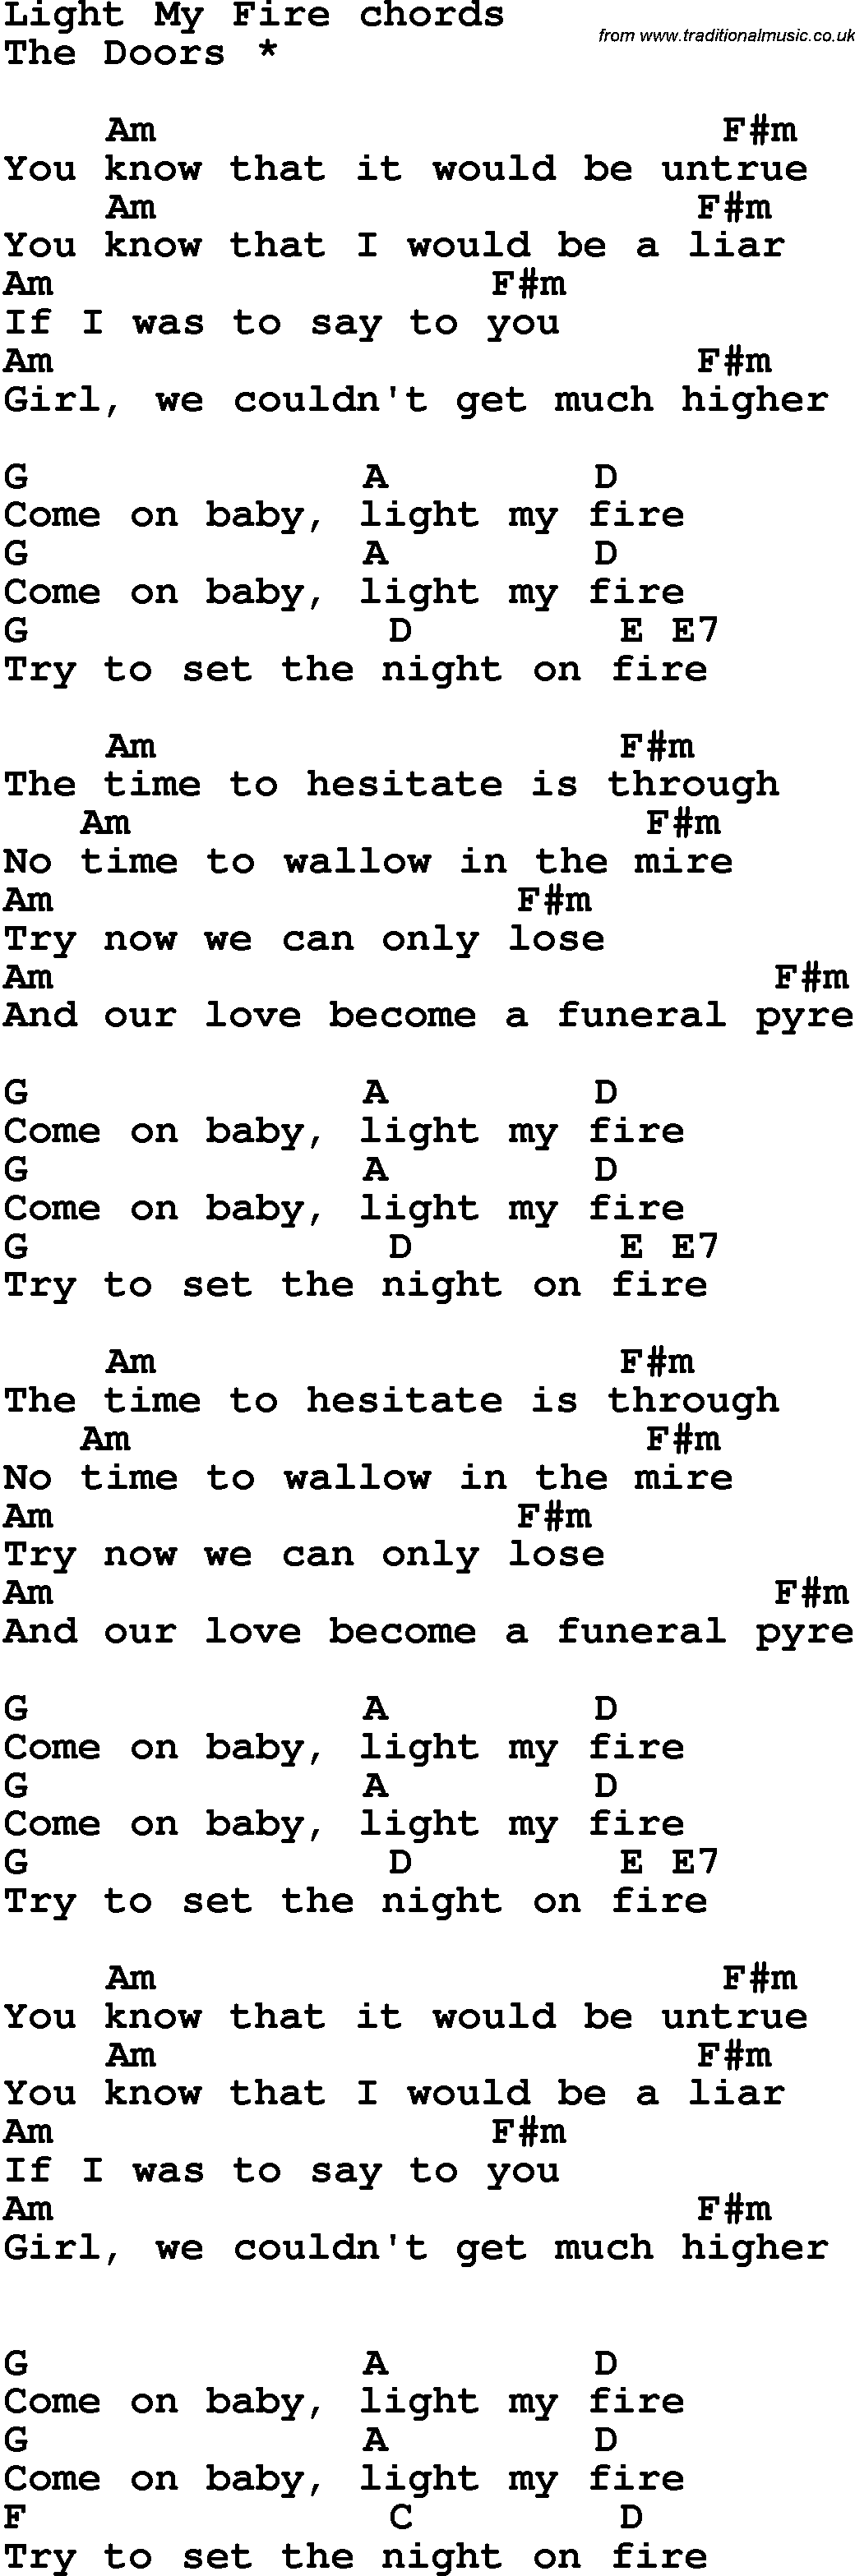 Song lyrics with guitar chords for light my fire song lyrics with guitar chords for light my fire hexwebz Gallery